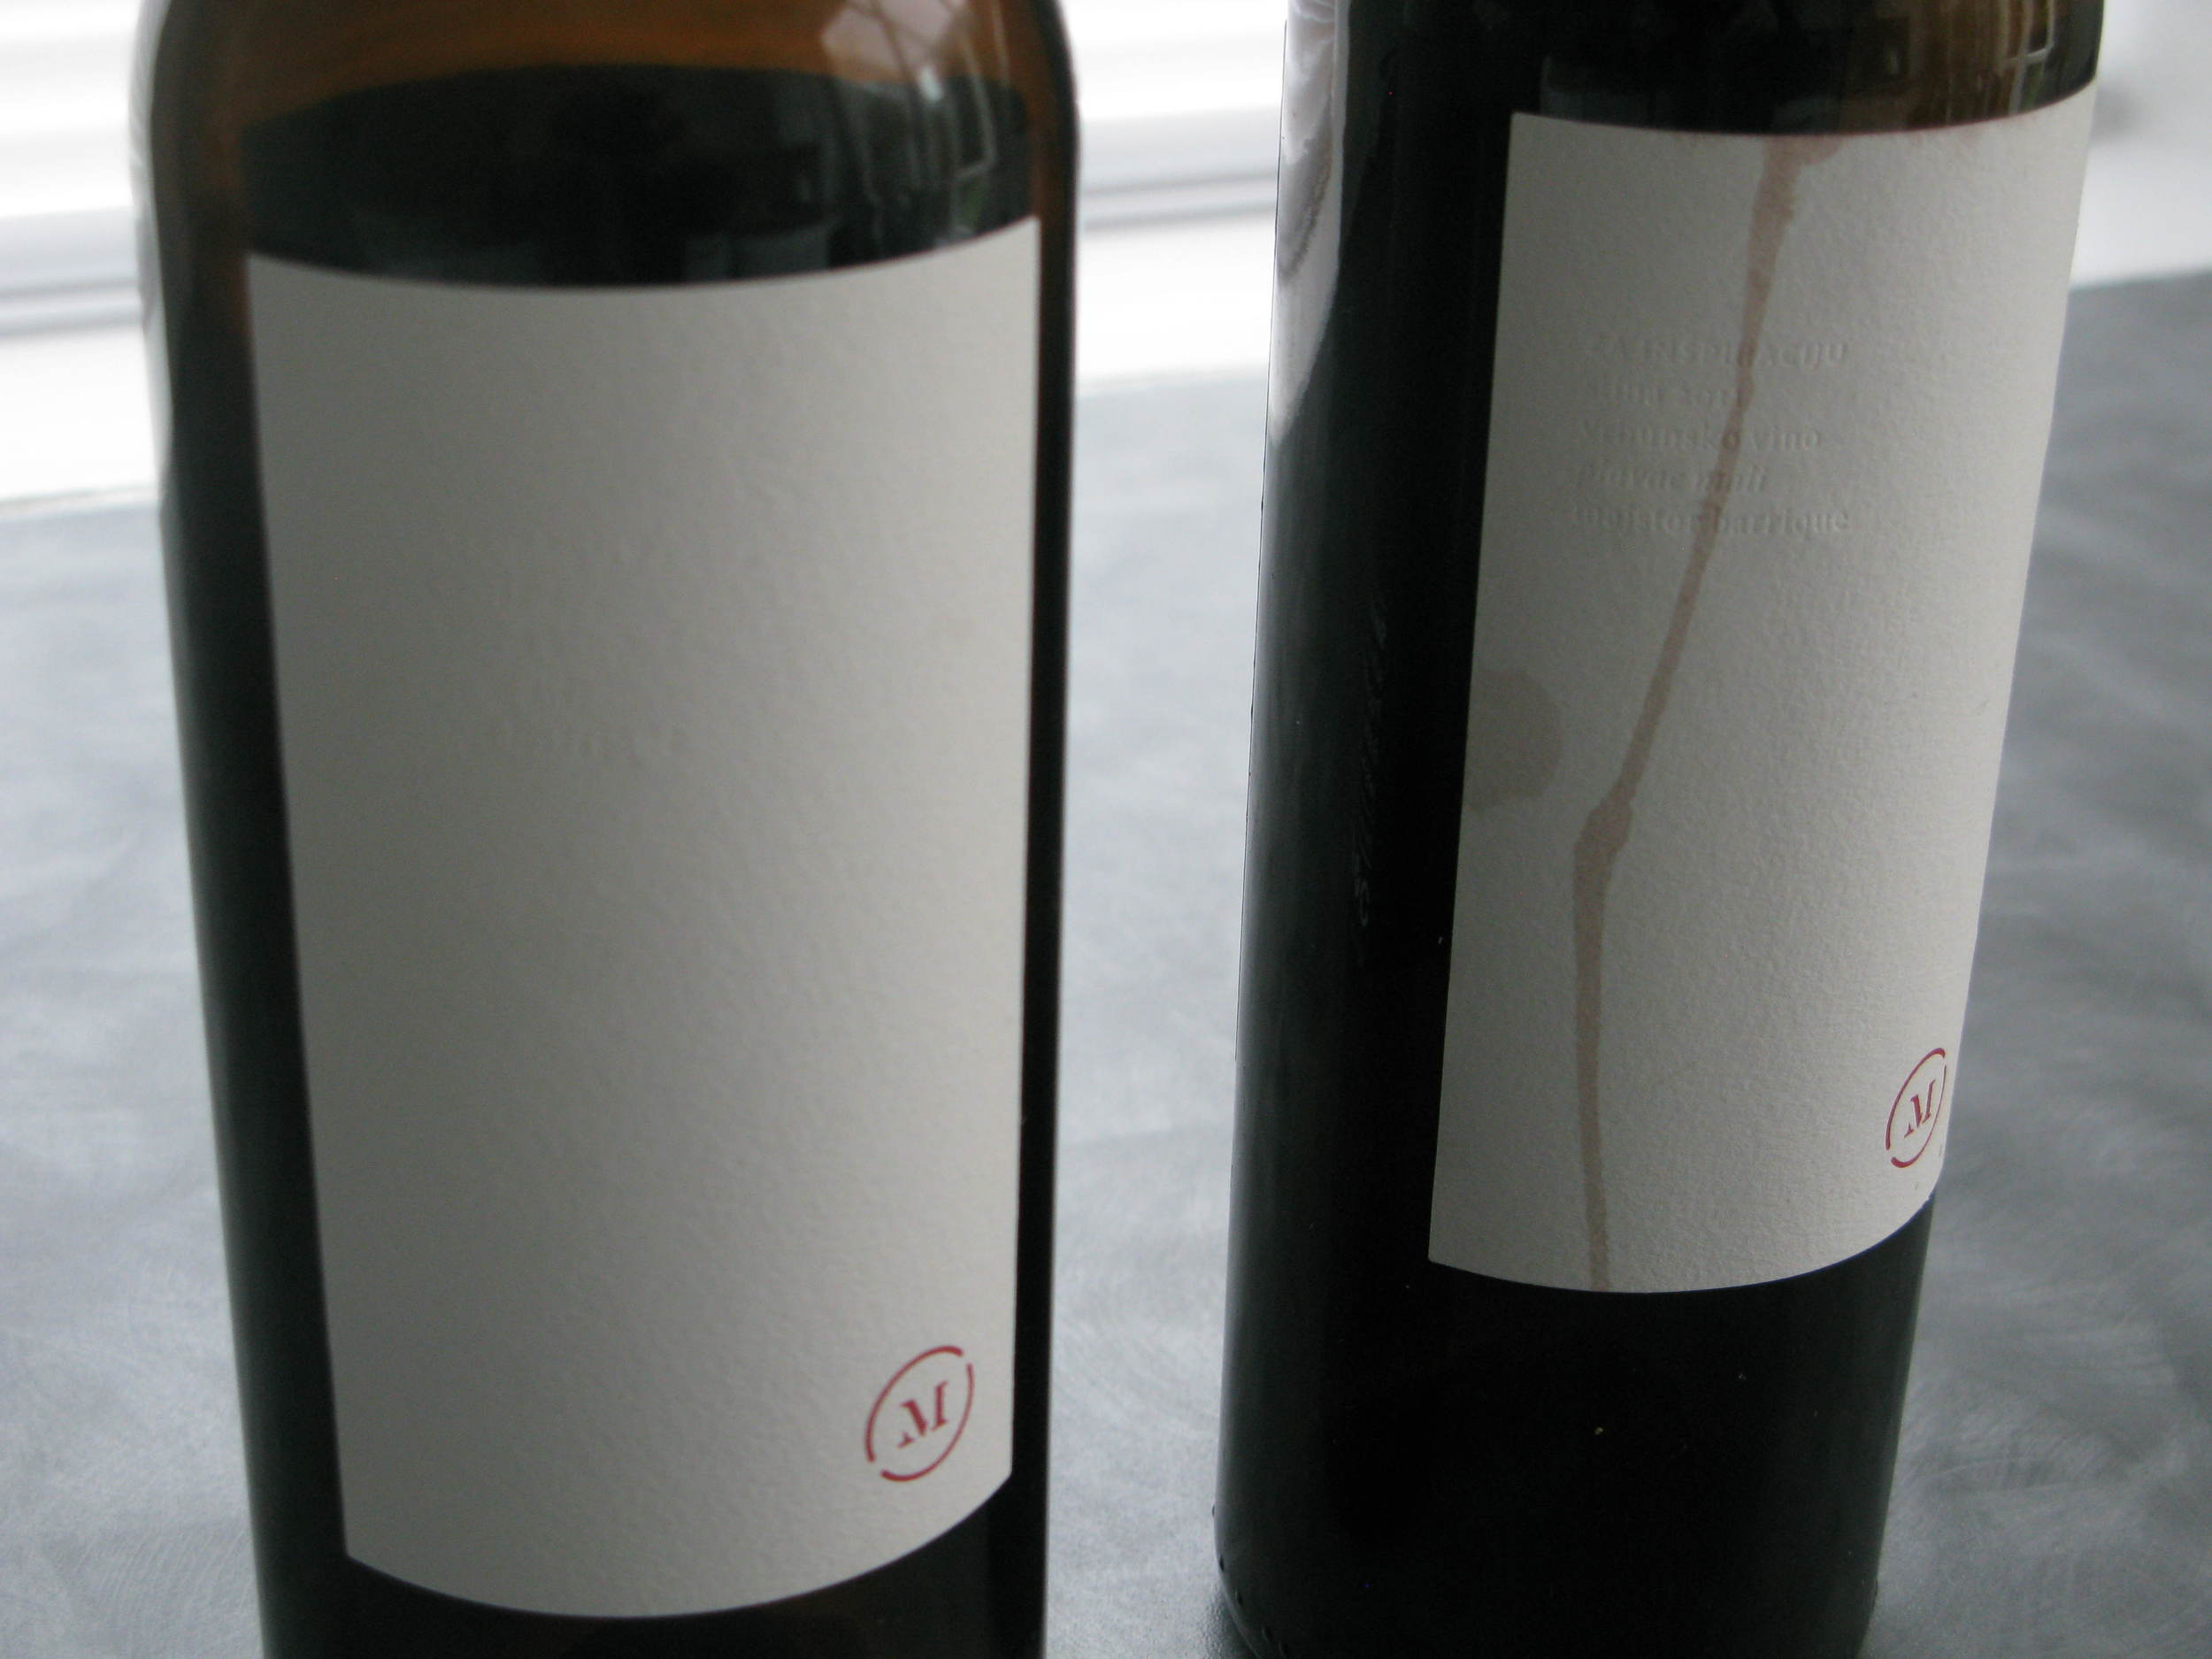 The Plavac Mali Majstor Barrique from Stina is one of our favourite reds from Croatia. We enjoyed two bottles with friends recently. Guess which bottle had the Vacu Vin pourer inserted